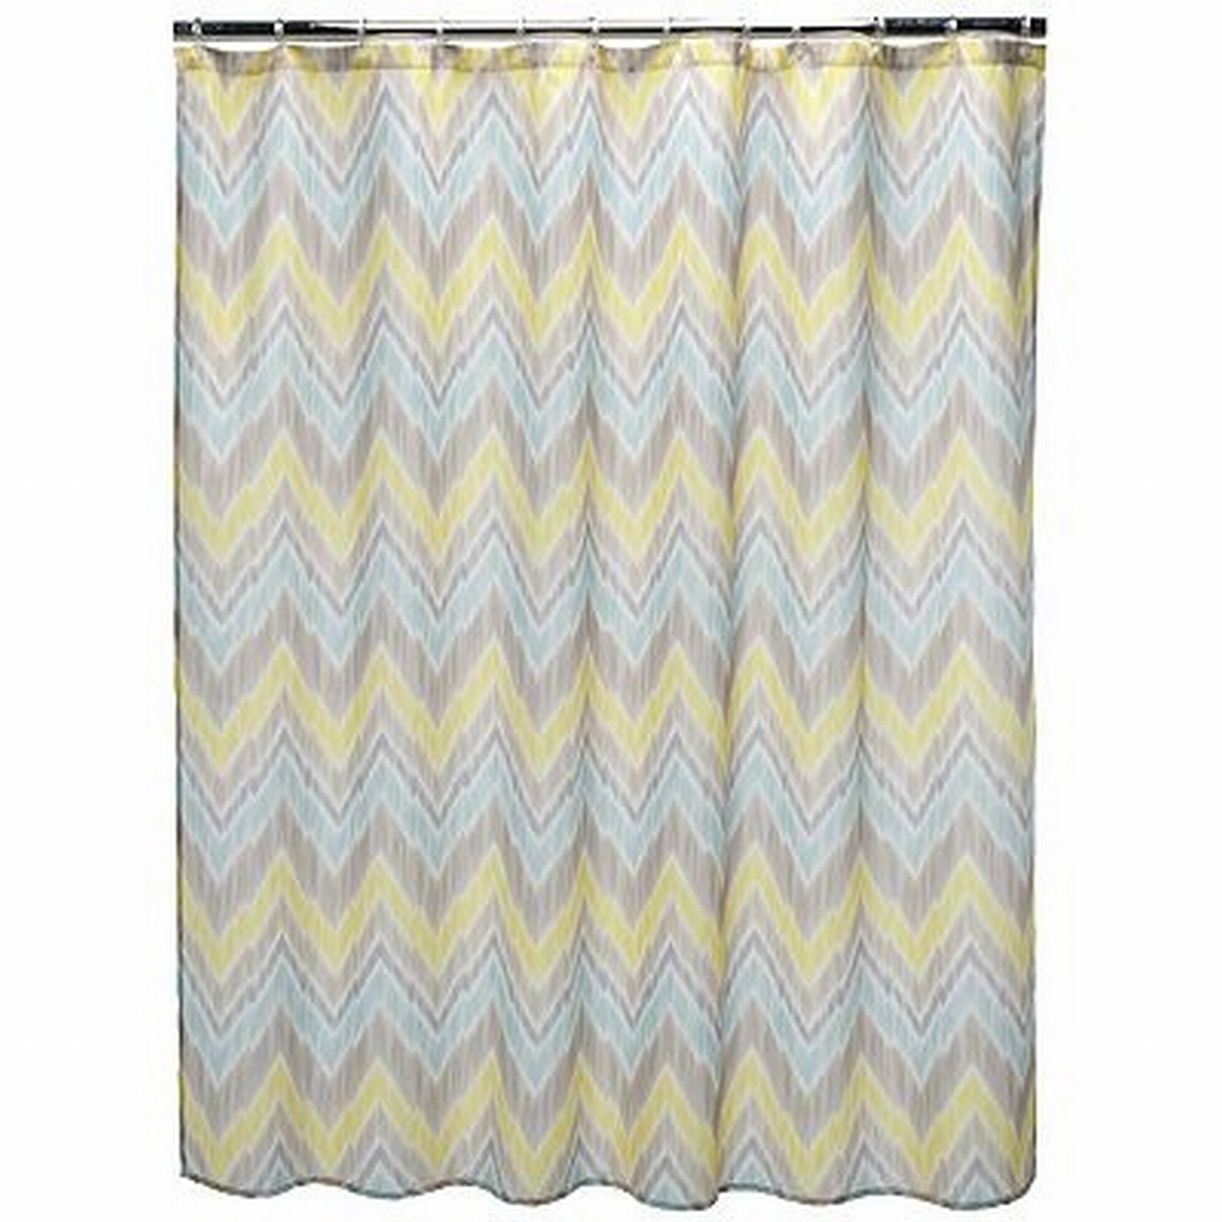 Home Classics Tribal Finds Fabric Shower Curtain Yellow Blue Chevron Bath Decor